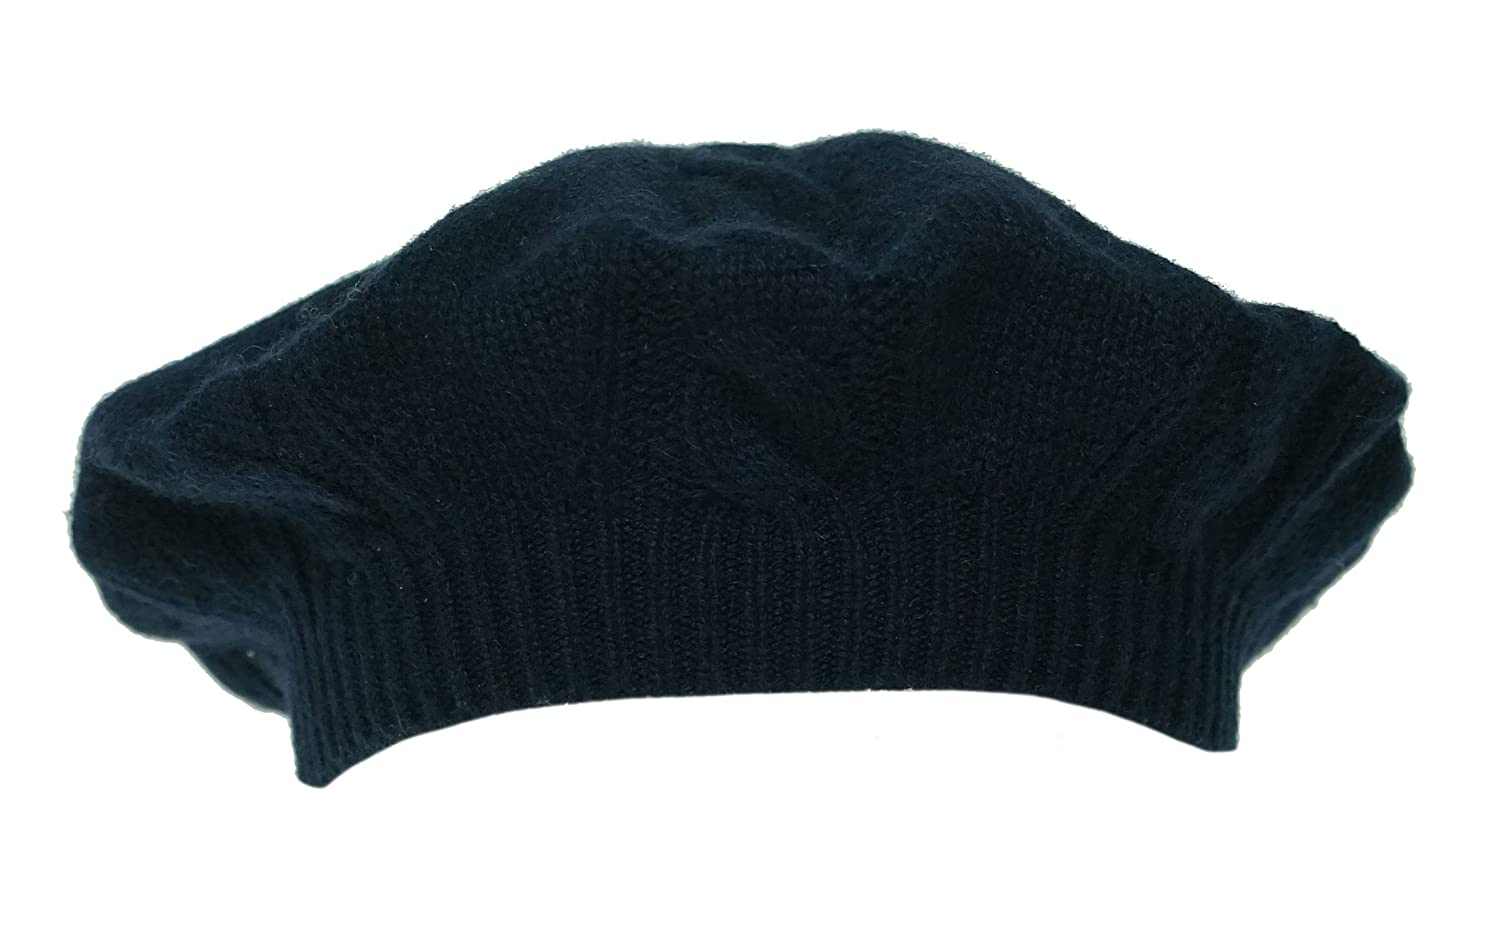 527e1e8cfd56d Charter Club Women s Cashmere Cable Knit One Size Navy Blue at Amazon  Women s Clothing store